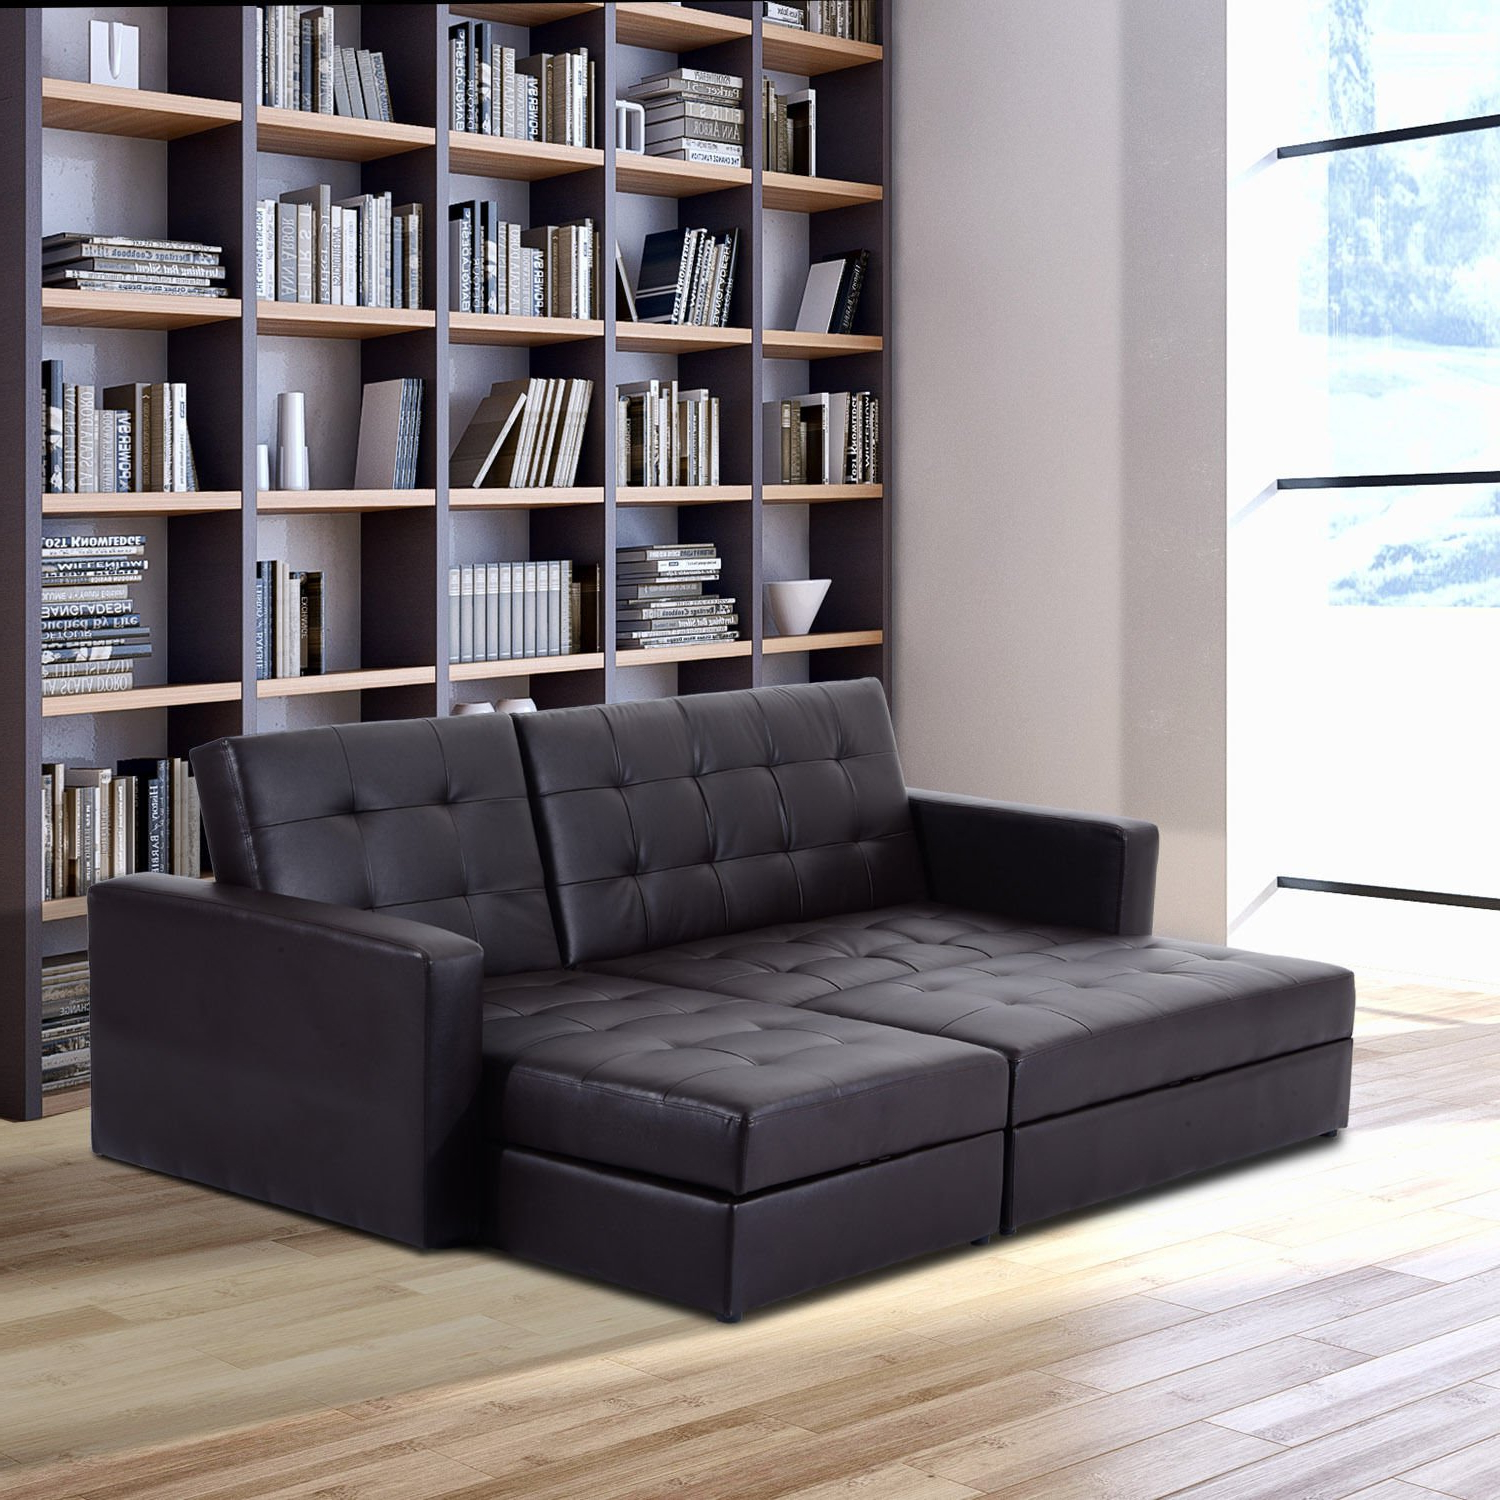 Most Current Storage+sleeper+couch+sofa+bed – Simply Style Regarding Liberty Sectional Futon Sofas With Storage (View 18 of 20)